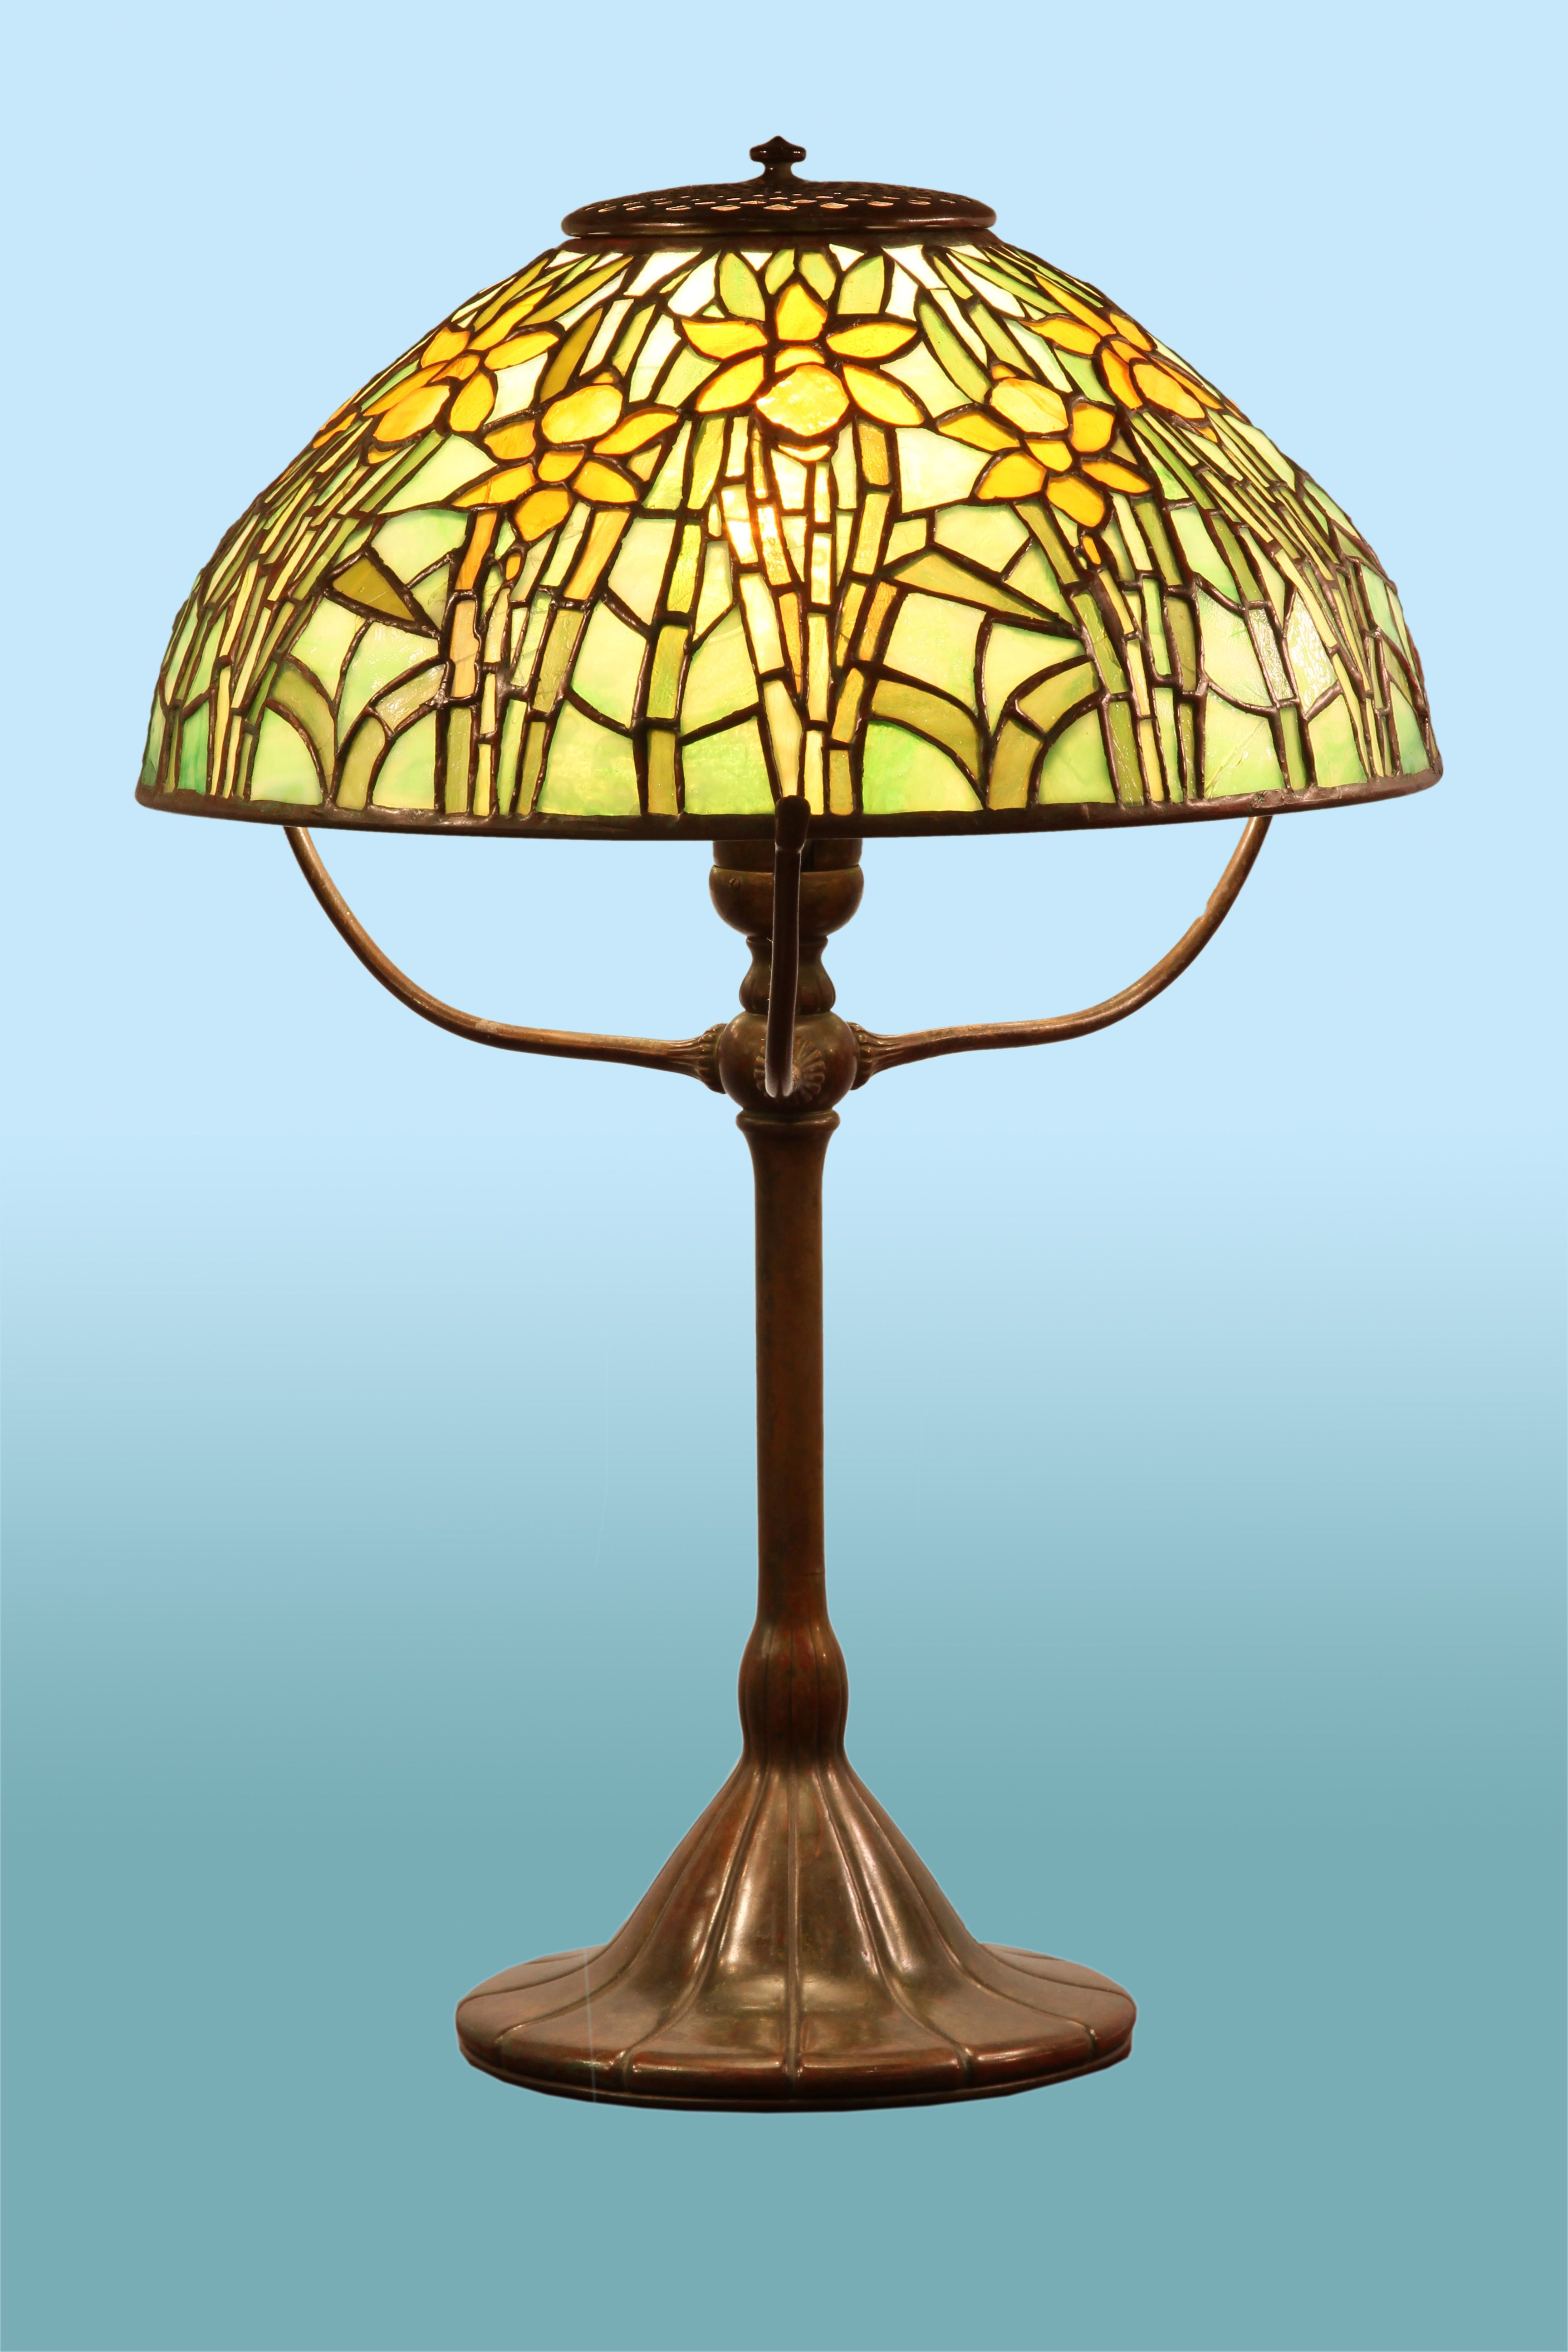 Tiffany Lamps For Sale Google Search With Images Table Lamps